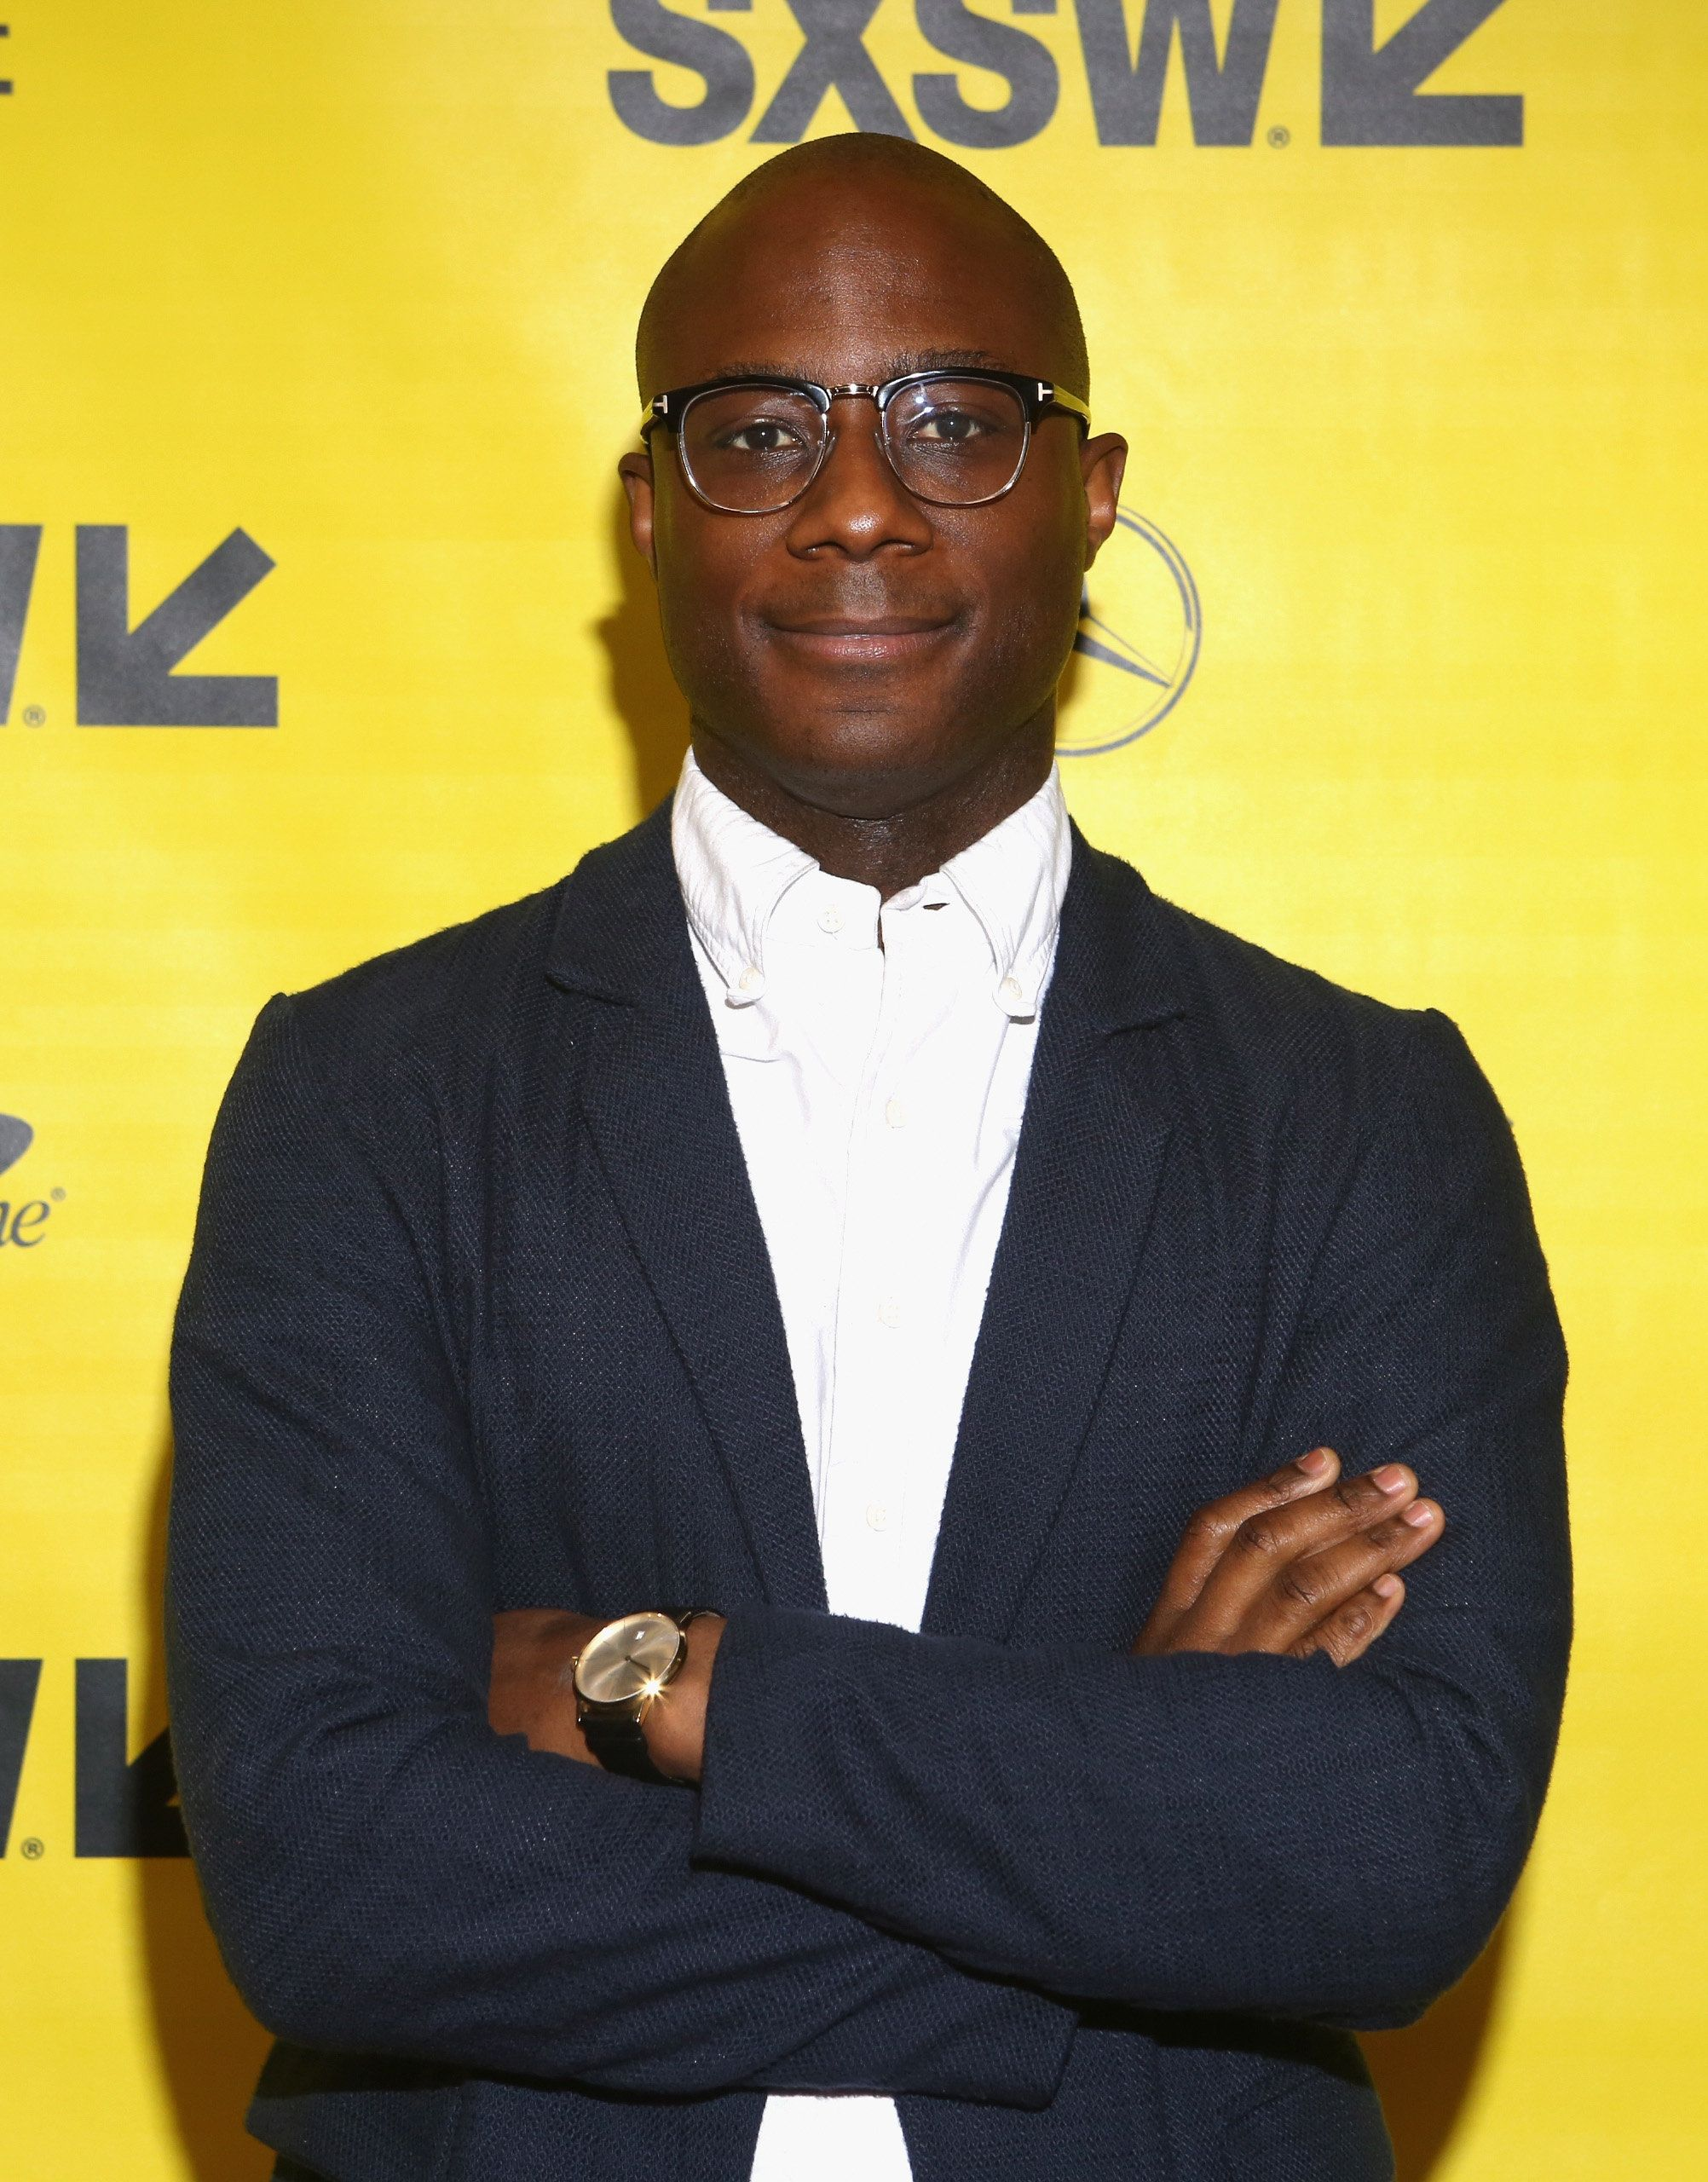 AUSTIN, TX - MARCH 11:  Filmmaker Barry Jenkins attends the Film Keynote during SXSW at Austin Convention Center on March 11, 2018 in Austin, Texas.  (Photo by Travis P Ball/Getty Images for SXSW)